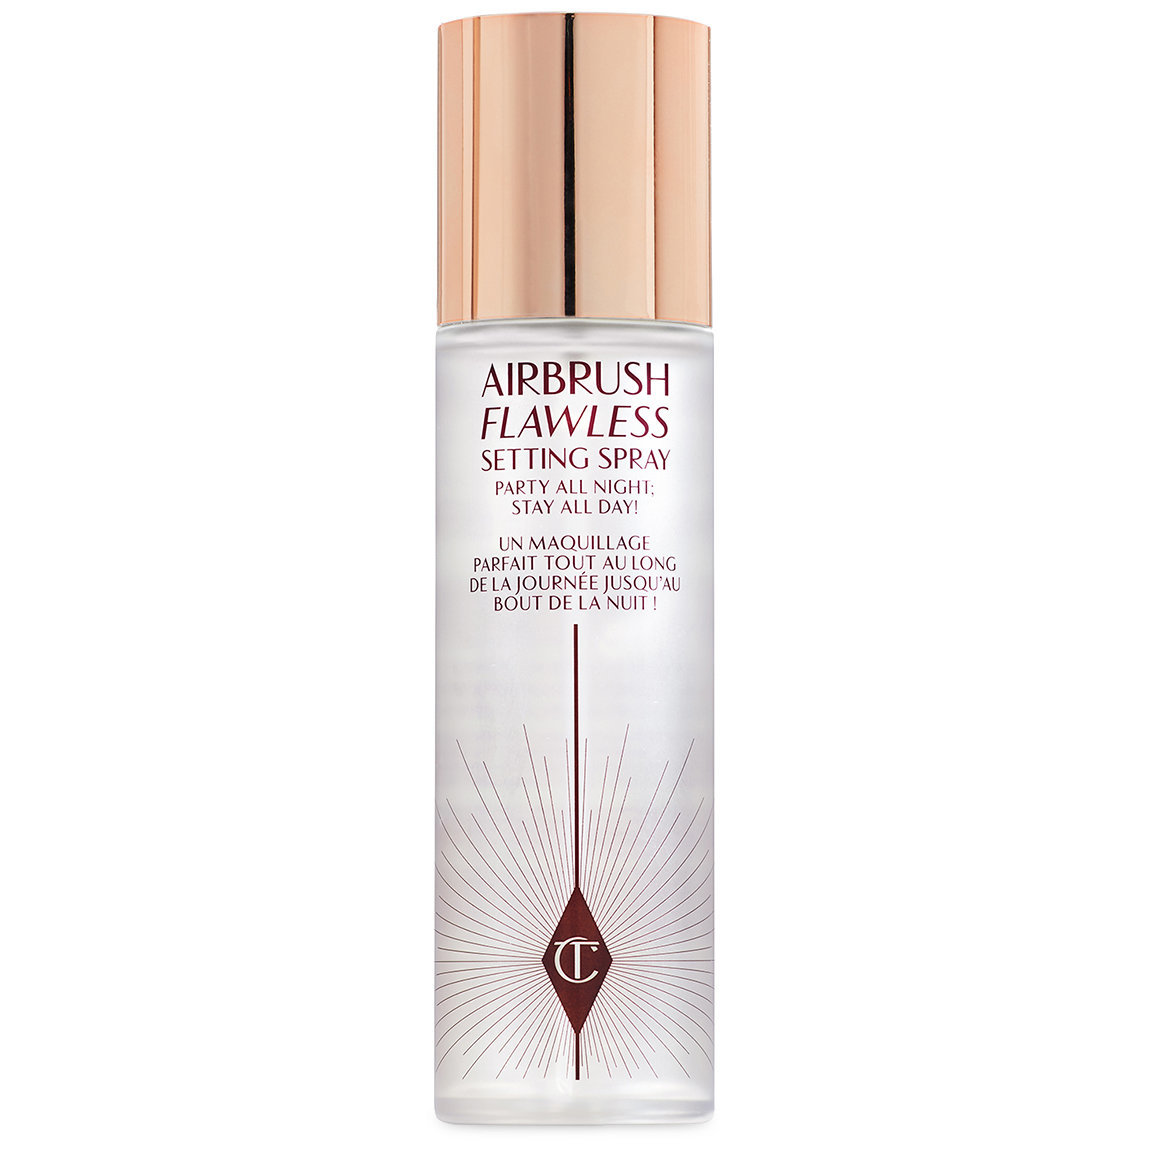 Charlotte Tilbury Airbrush Flawless Setting Spray 100 ml product swatch.